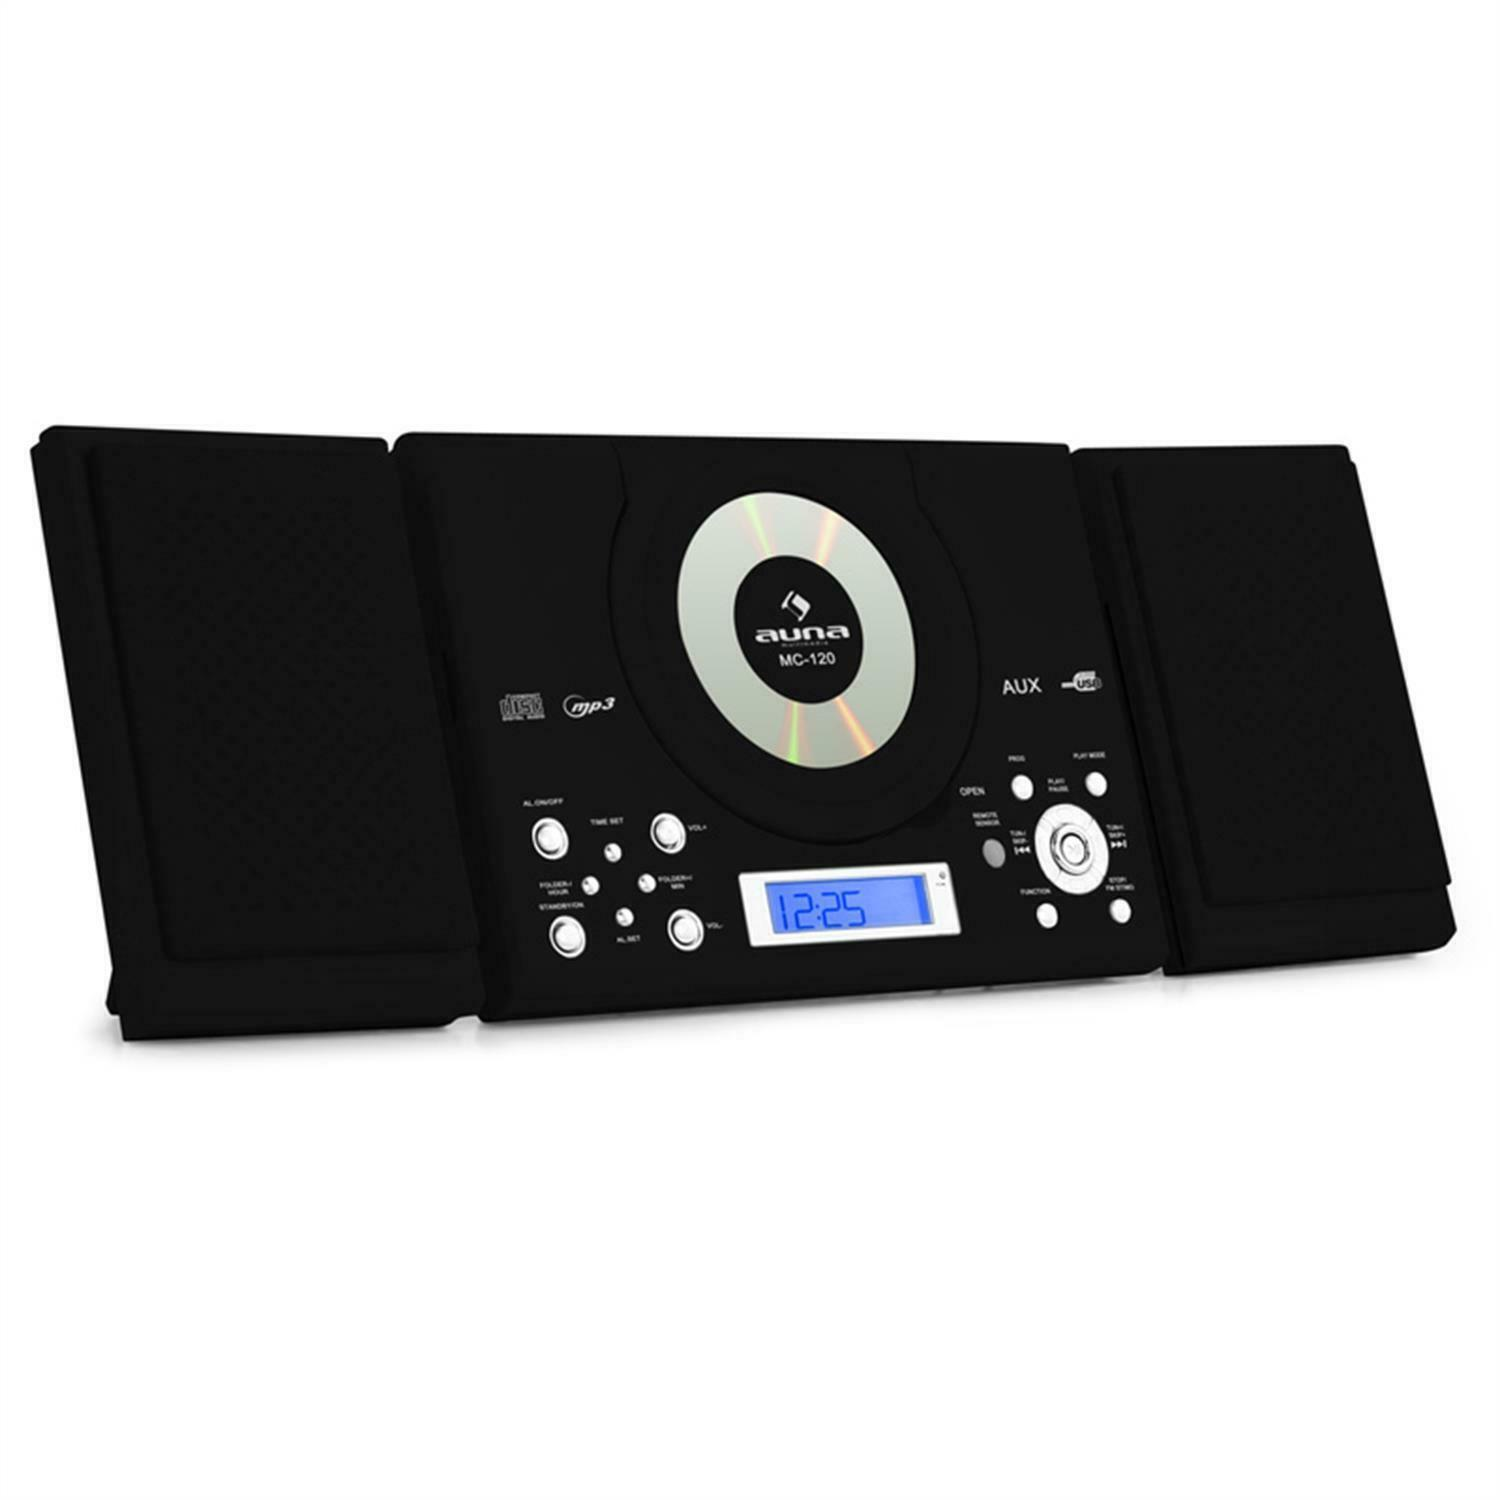 design mini stereo hifi anlage mp3 cd player ukw radio usb aux anlage schwarz eur 59 99. Black Bedroom Furniture Sets. Home Design Ideas